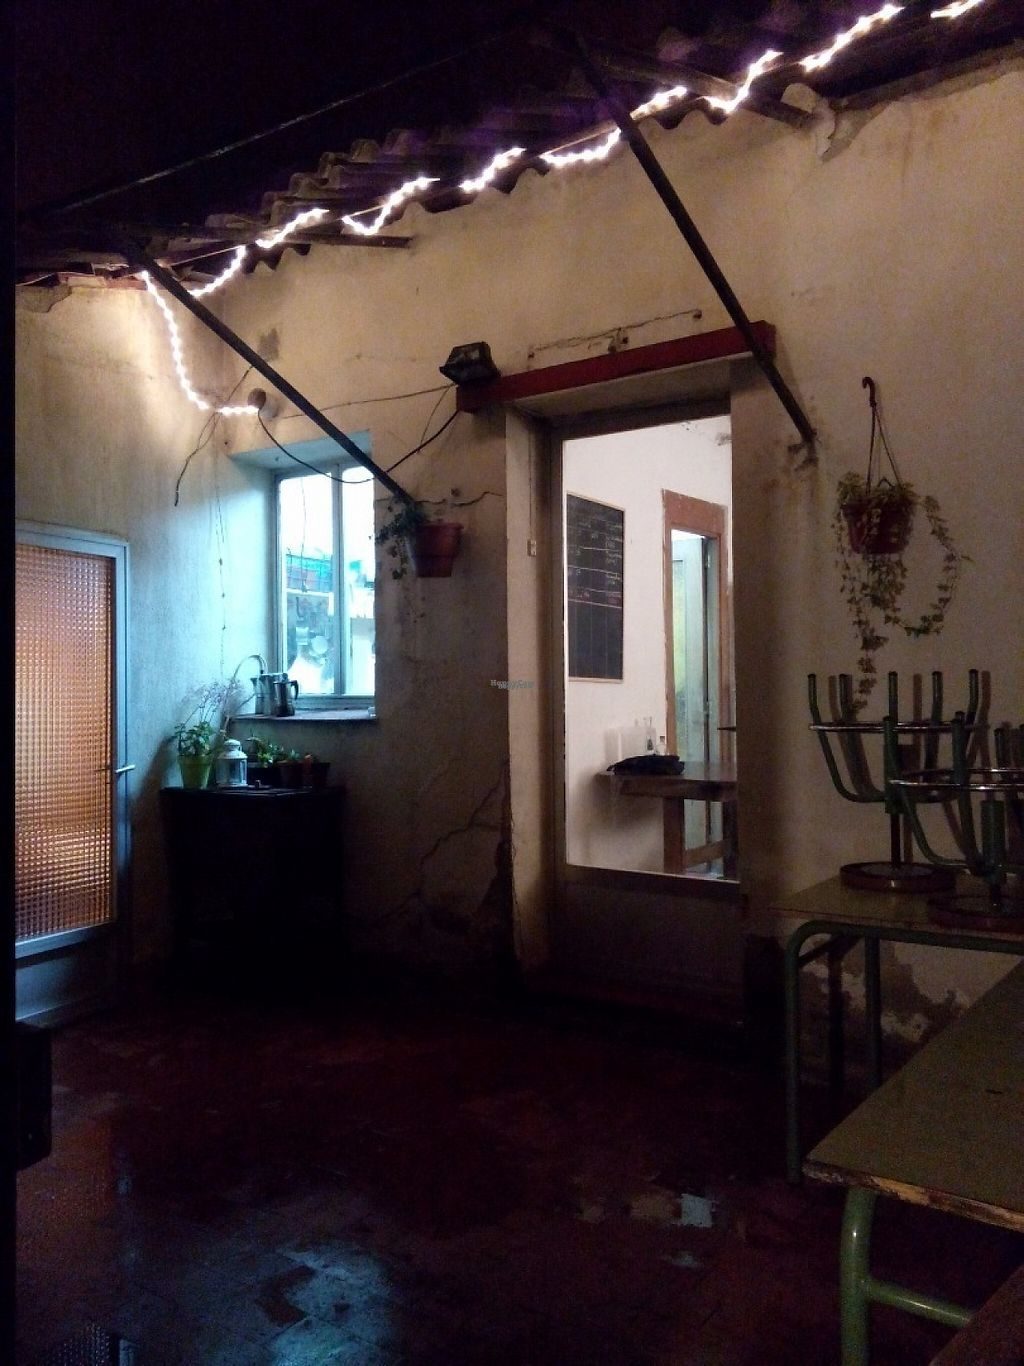 """Photo of Sr Boniato  by <a href=""""/members/profile/srboniato"""">srboniato</a> <br/>Open air terrace. Perfect to eat vegan pizza and have an artisan beer on spring, summer and early autumn. still beauty and magic during the winter <br/> March 30, 2017  - <a href='/contact/abuse/image/85138/242685'>Report</a>"""